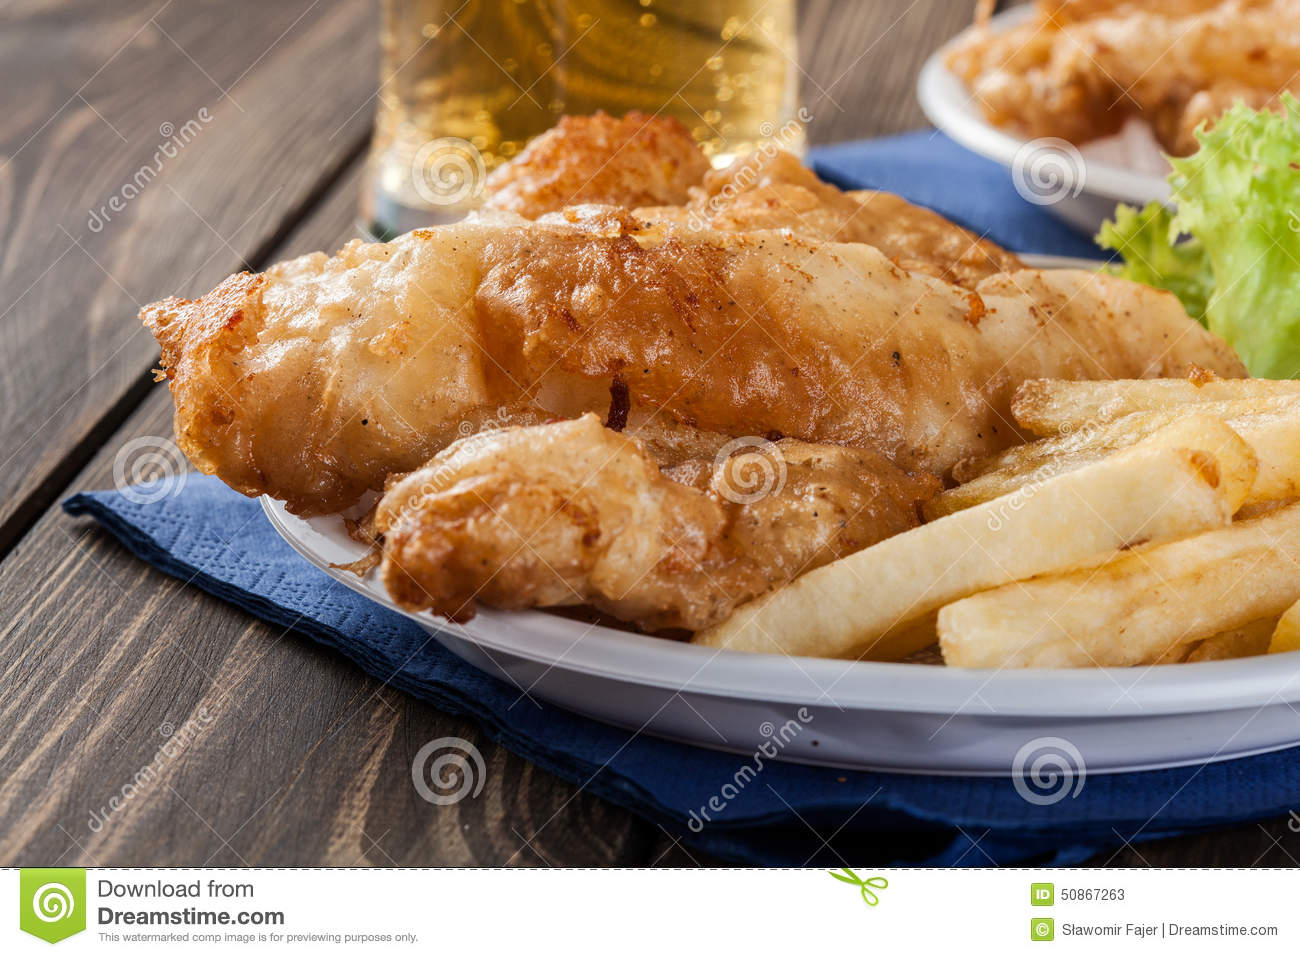 Fish And Chips With Tartar Sauce On A Plate Stock Photo - Image ...